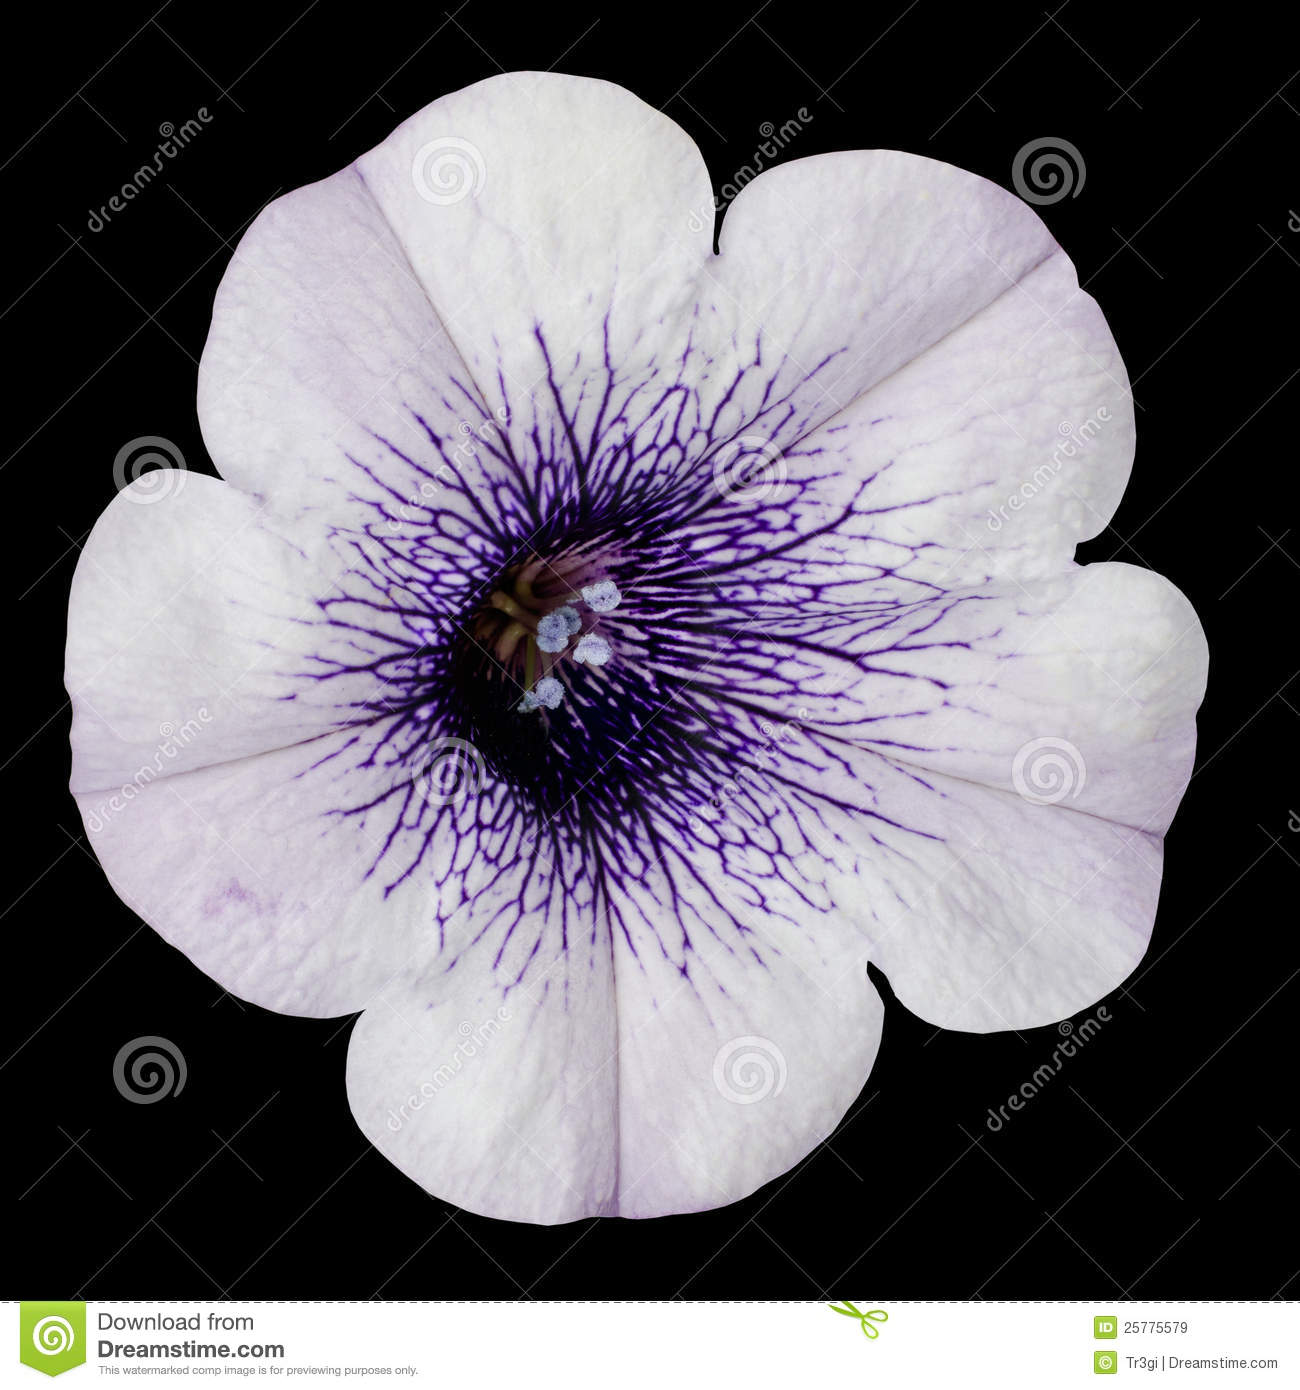 White morning glory flower with purple center stock image image of white morning glory flower with purple center isolated on black background mightylinksfo